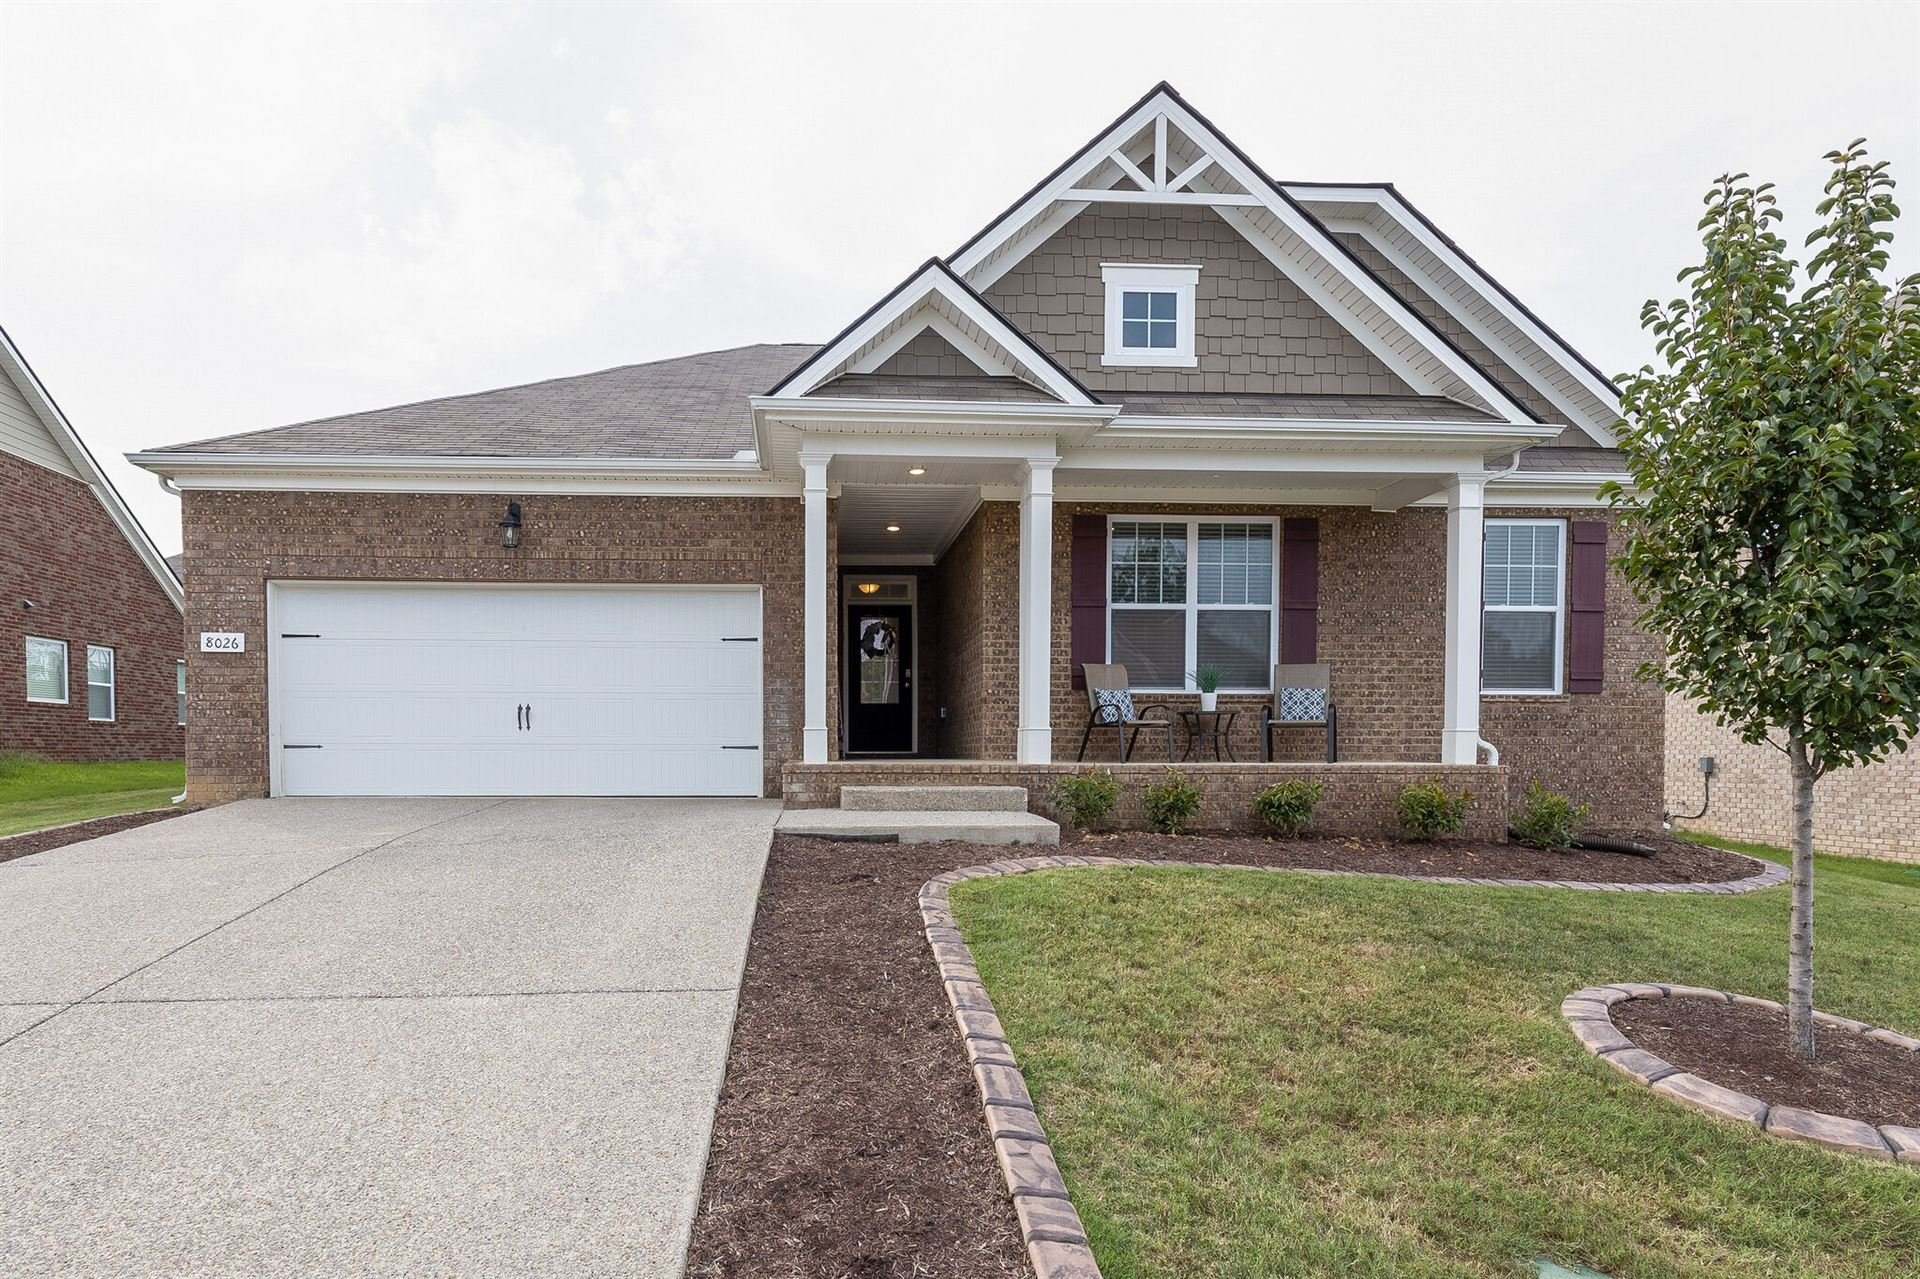 8026 Forest Hills Dr, Spring Hill, TN 37174 - MLS#: 2276807